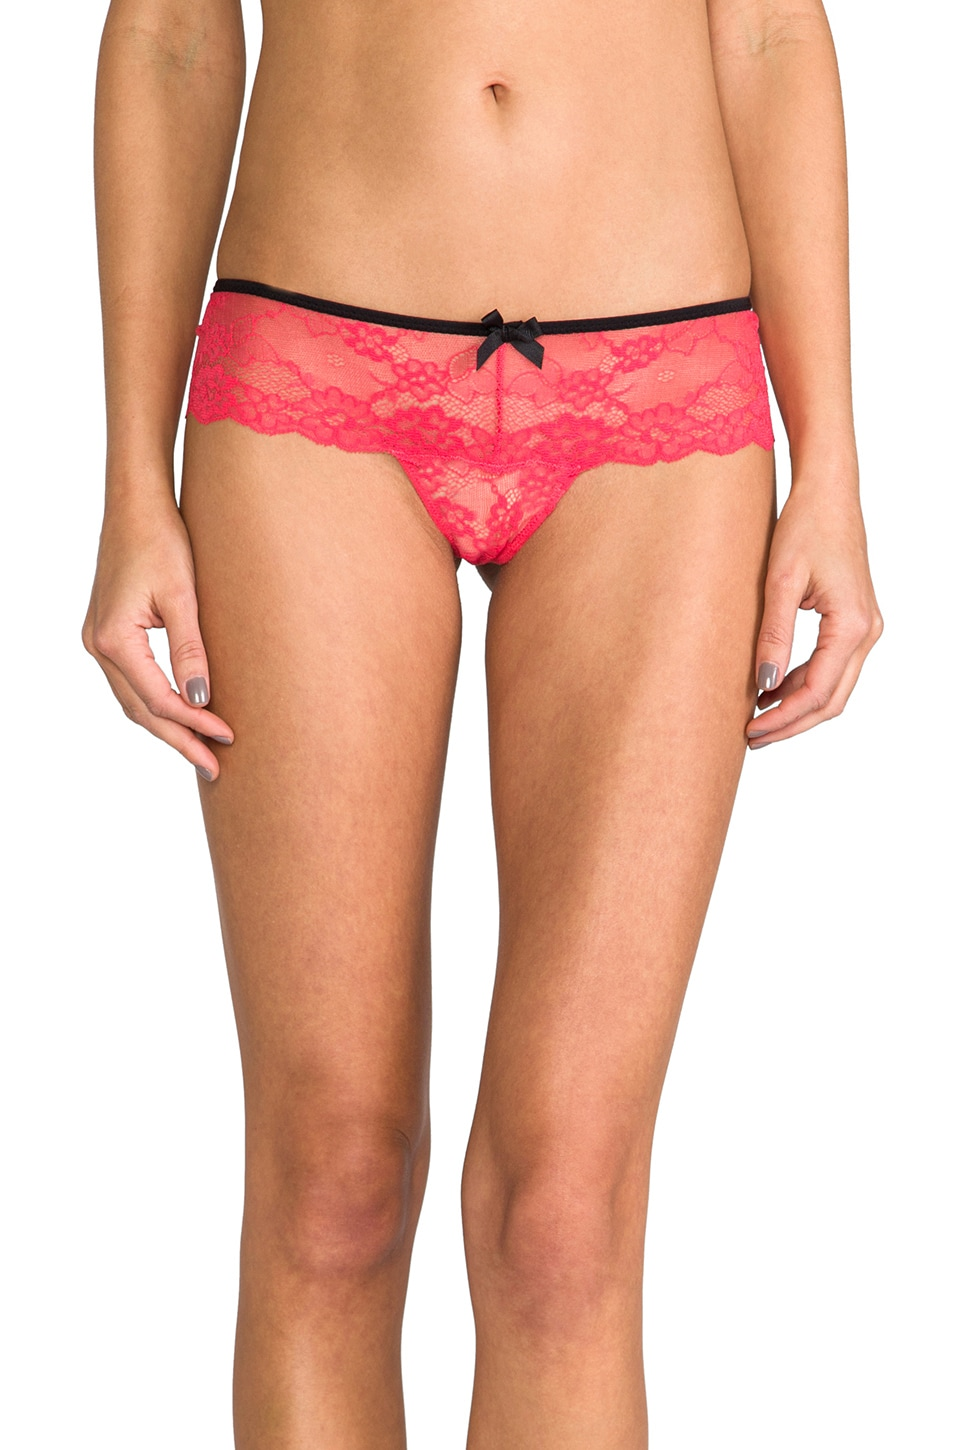 eberjey Fiona Lace Thong in Guava